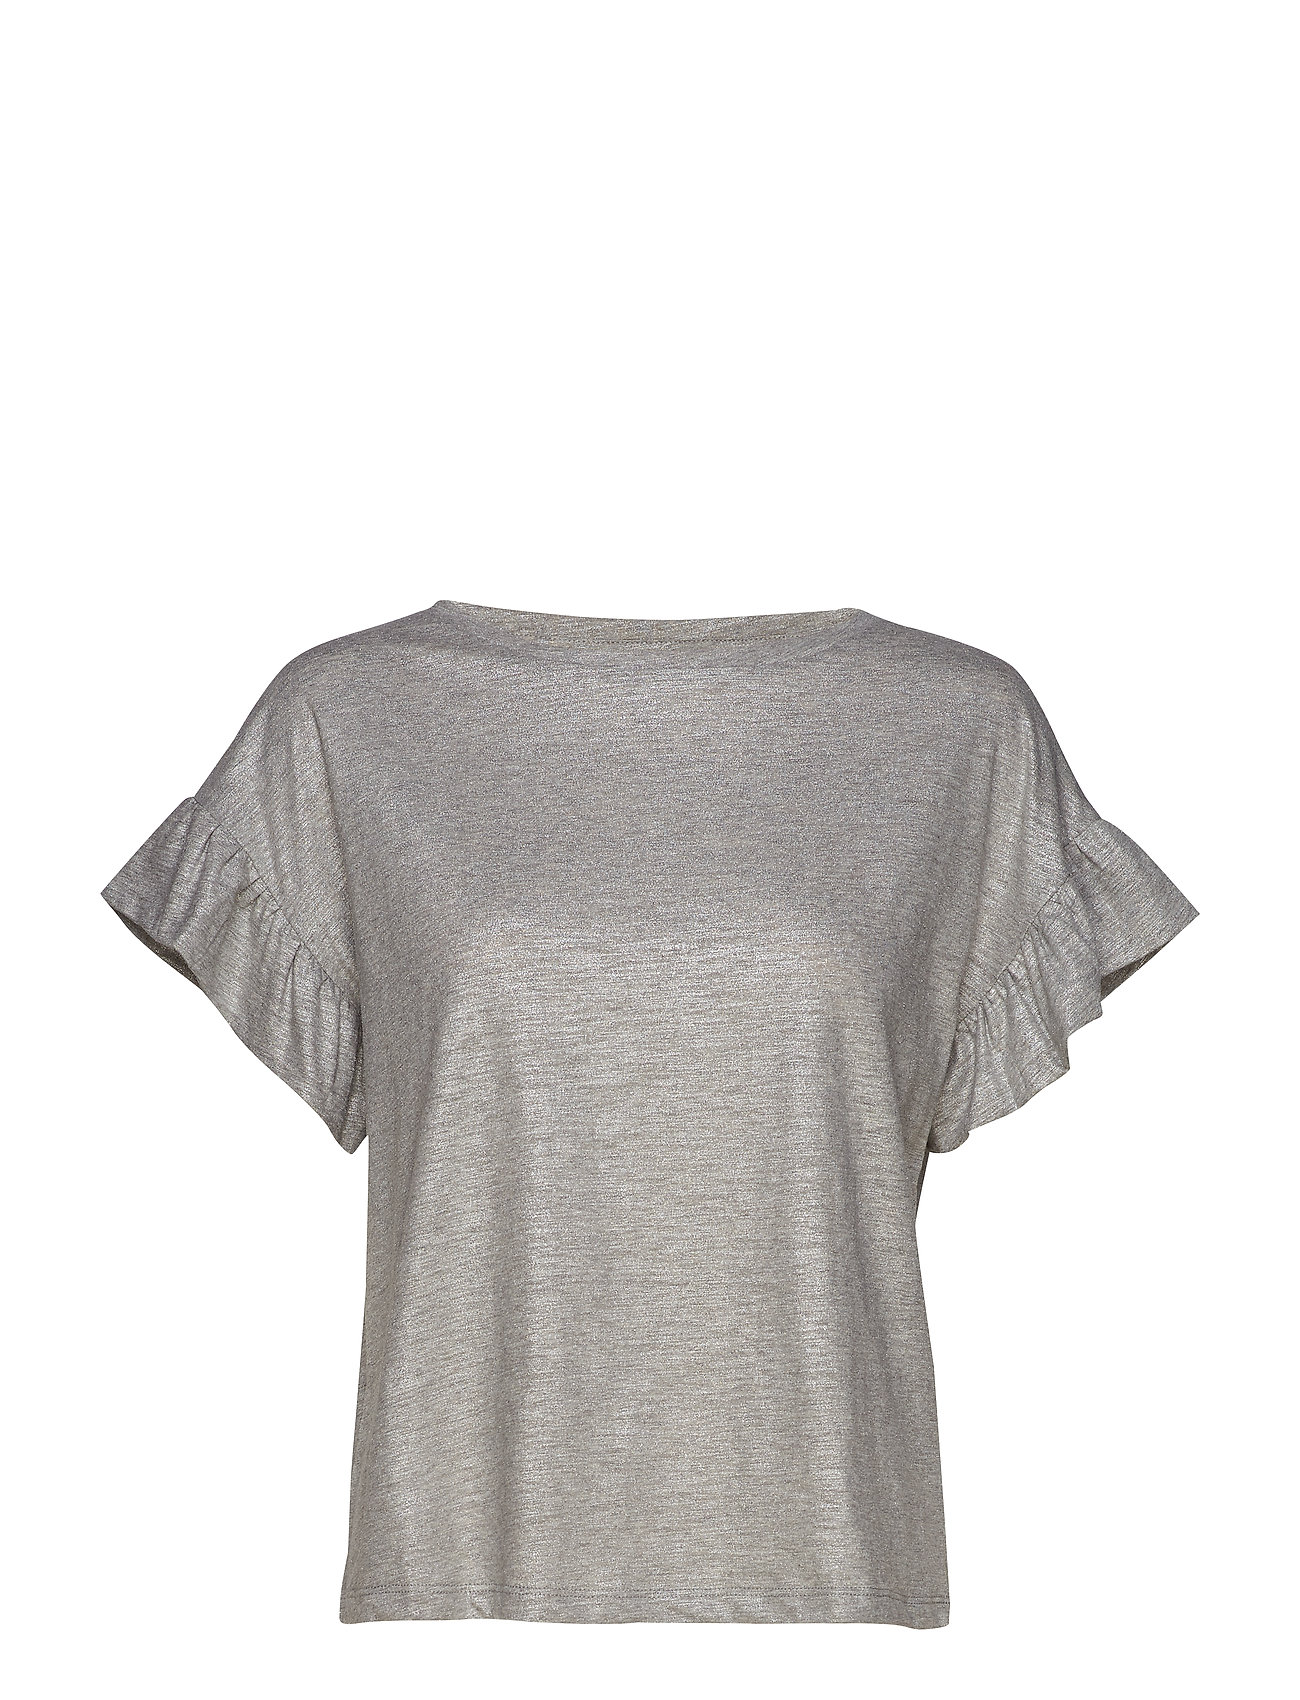 Day Birger et Mikkelsen Day Flashes - MEDIUM GREY MEL.